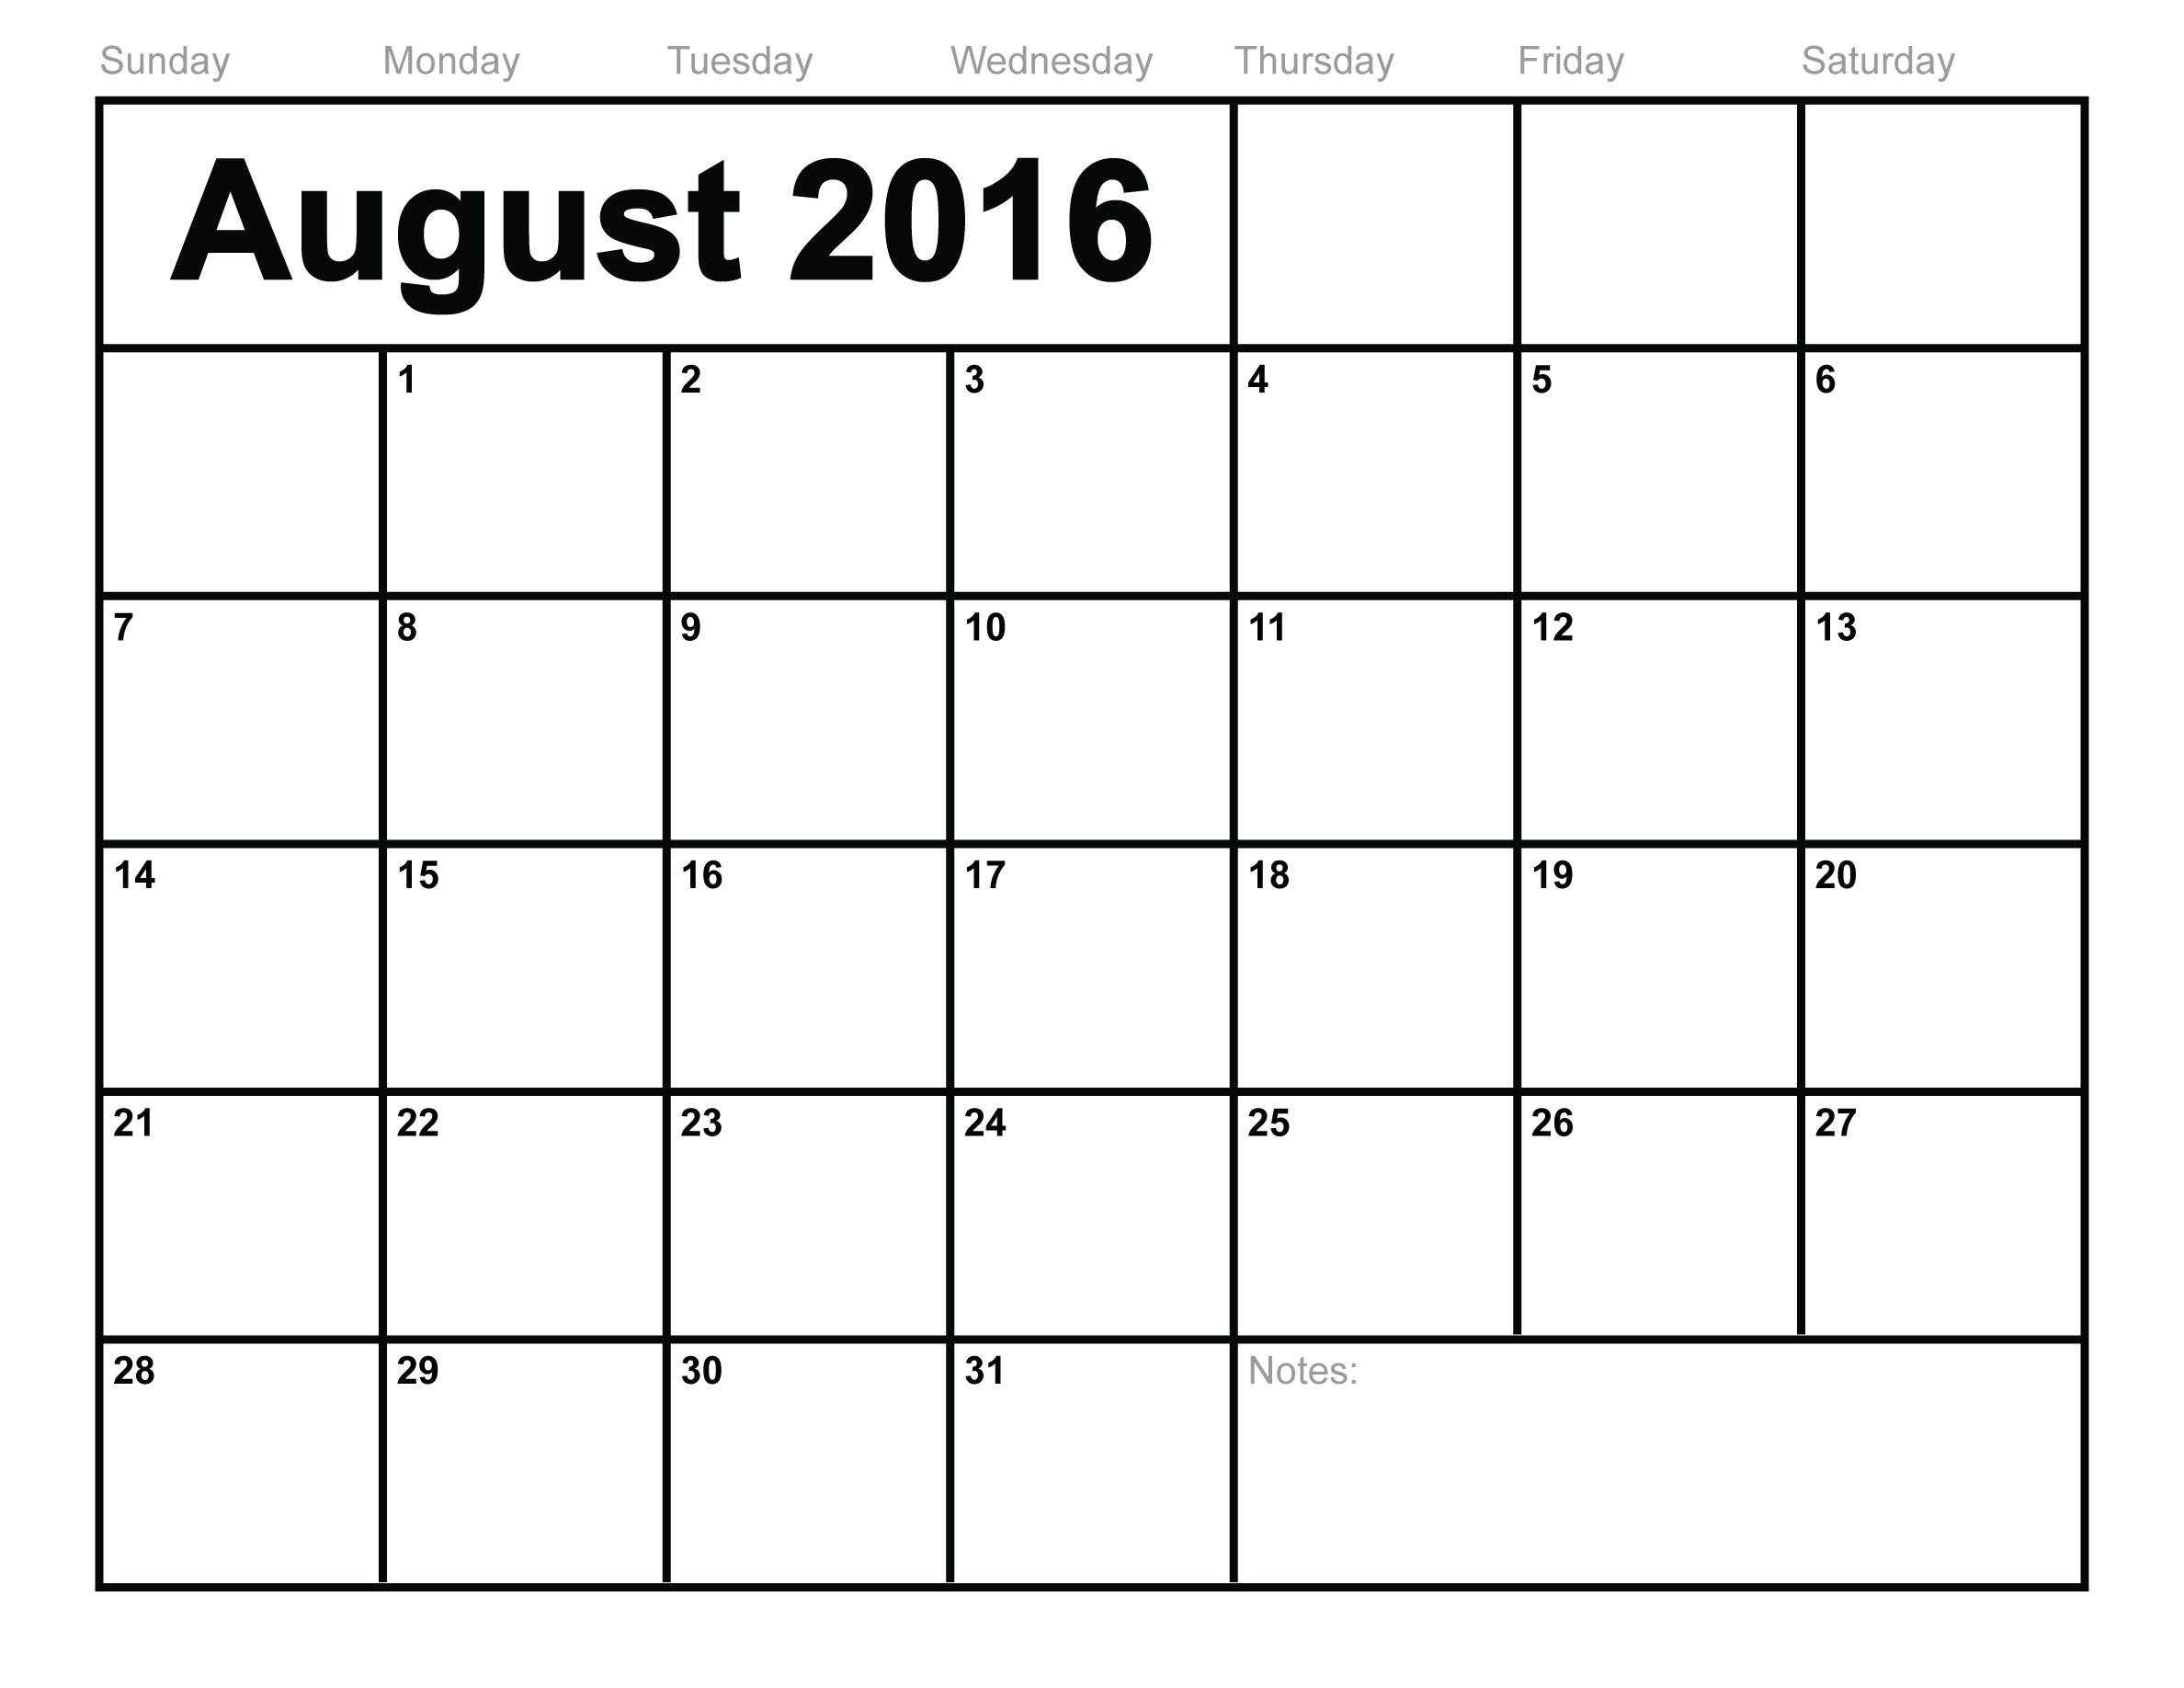 Calendar Template to Type In Blank Calendar Template 2016 that You Can Type In